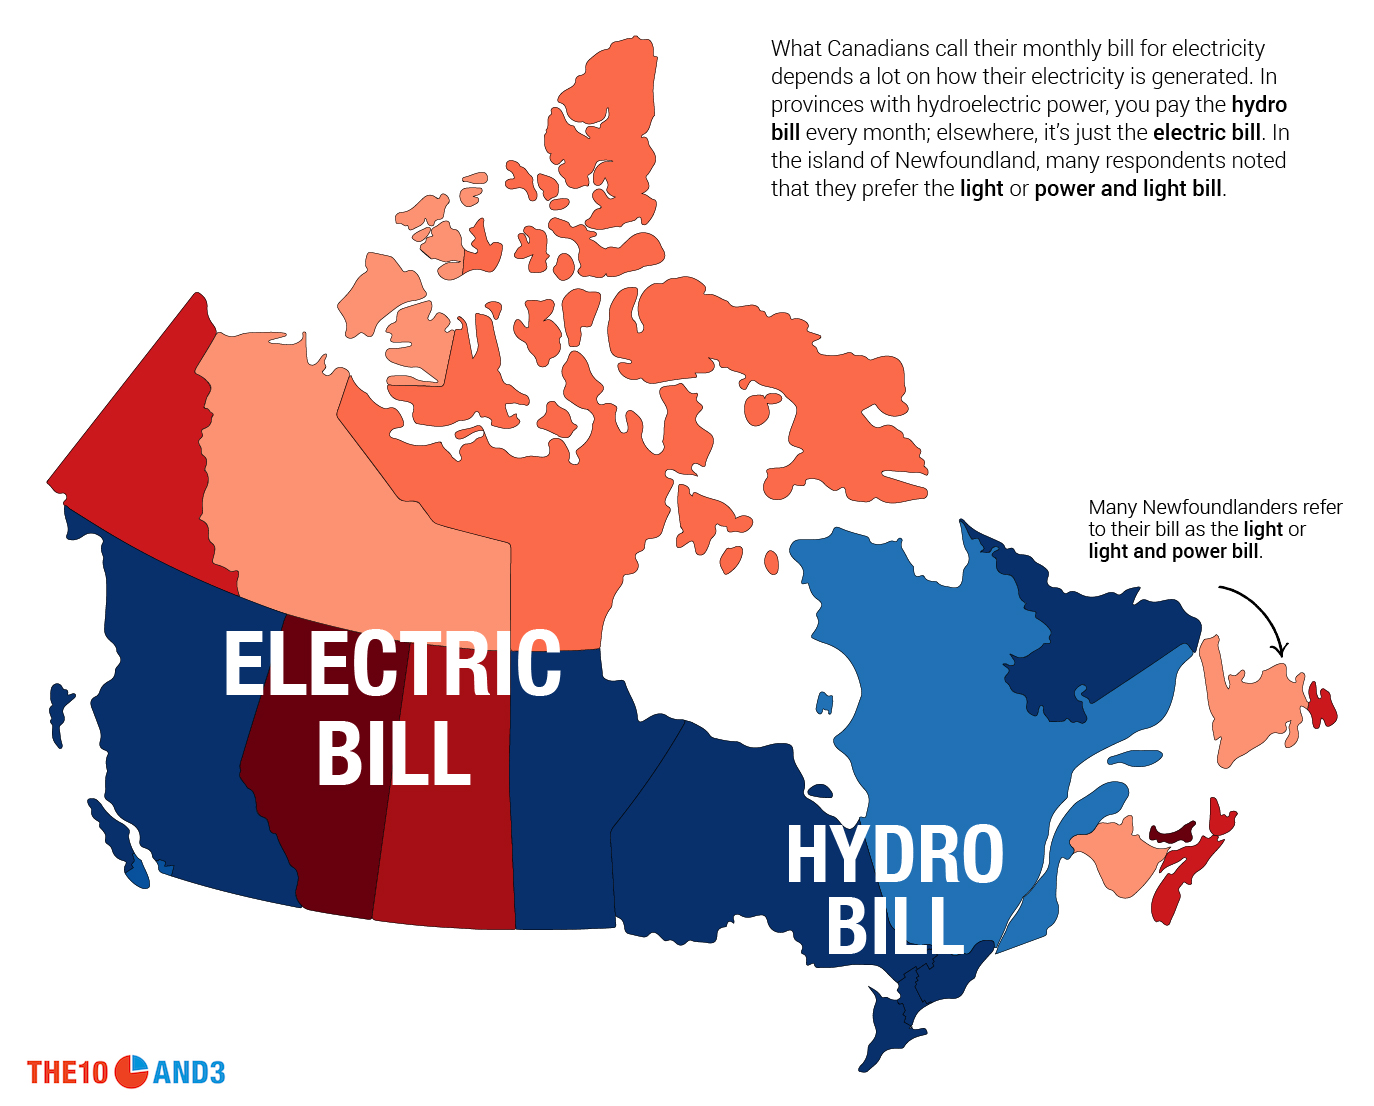 Electric Pill vs. Hydro Bill